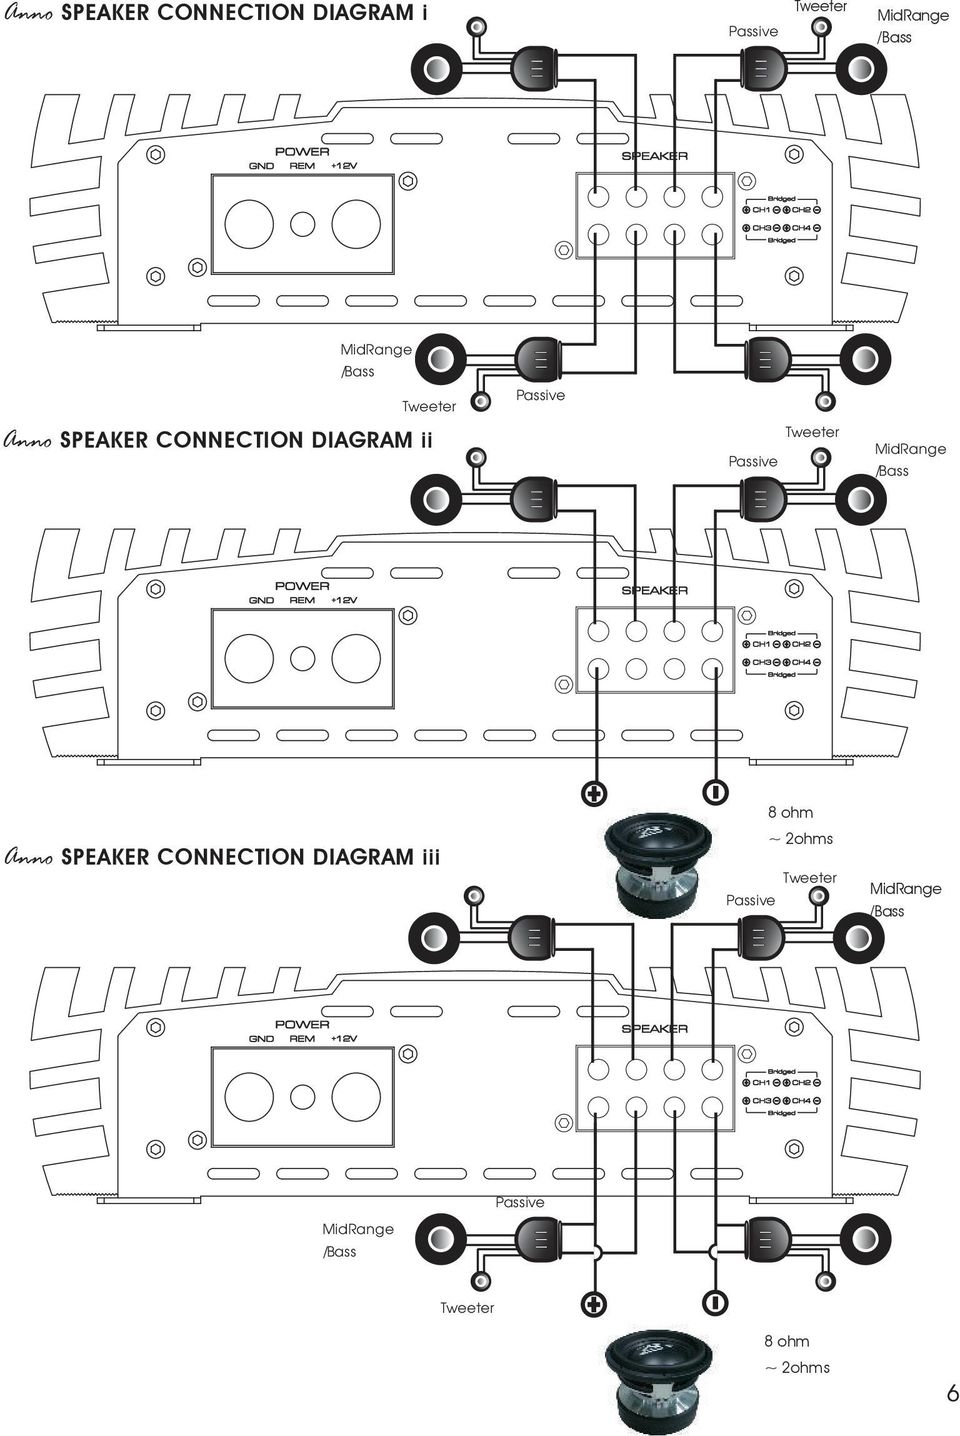 Owners Manual High Performance Amplifiers Pdf Schema Ampli Puissance Mosfet 1000w Passive Tweeter Midrange Bass 8 Ohm Anno Speaker Connection Diagram